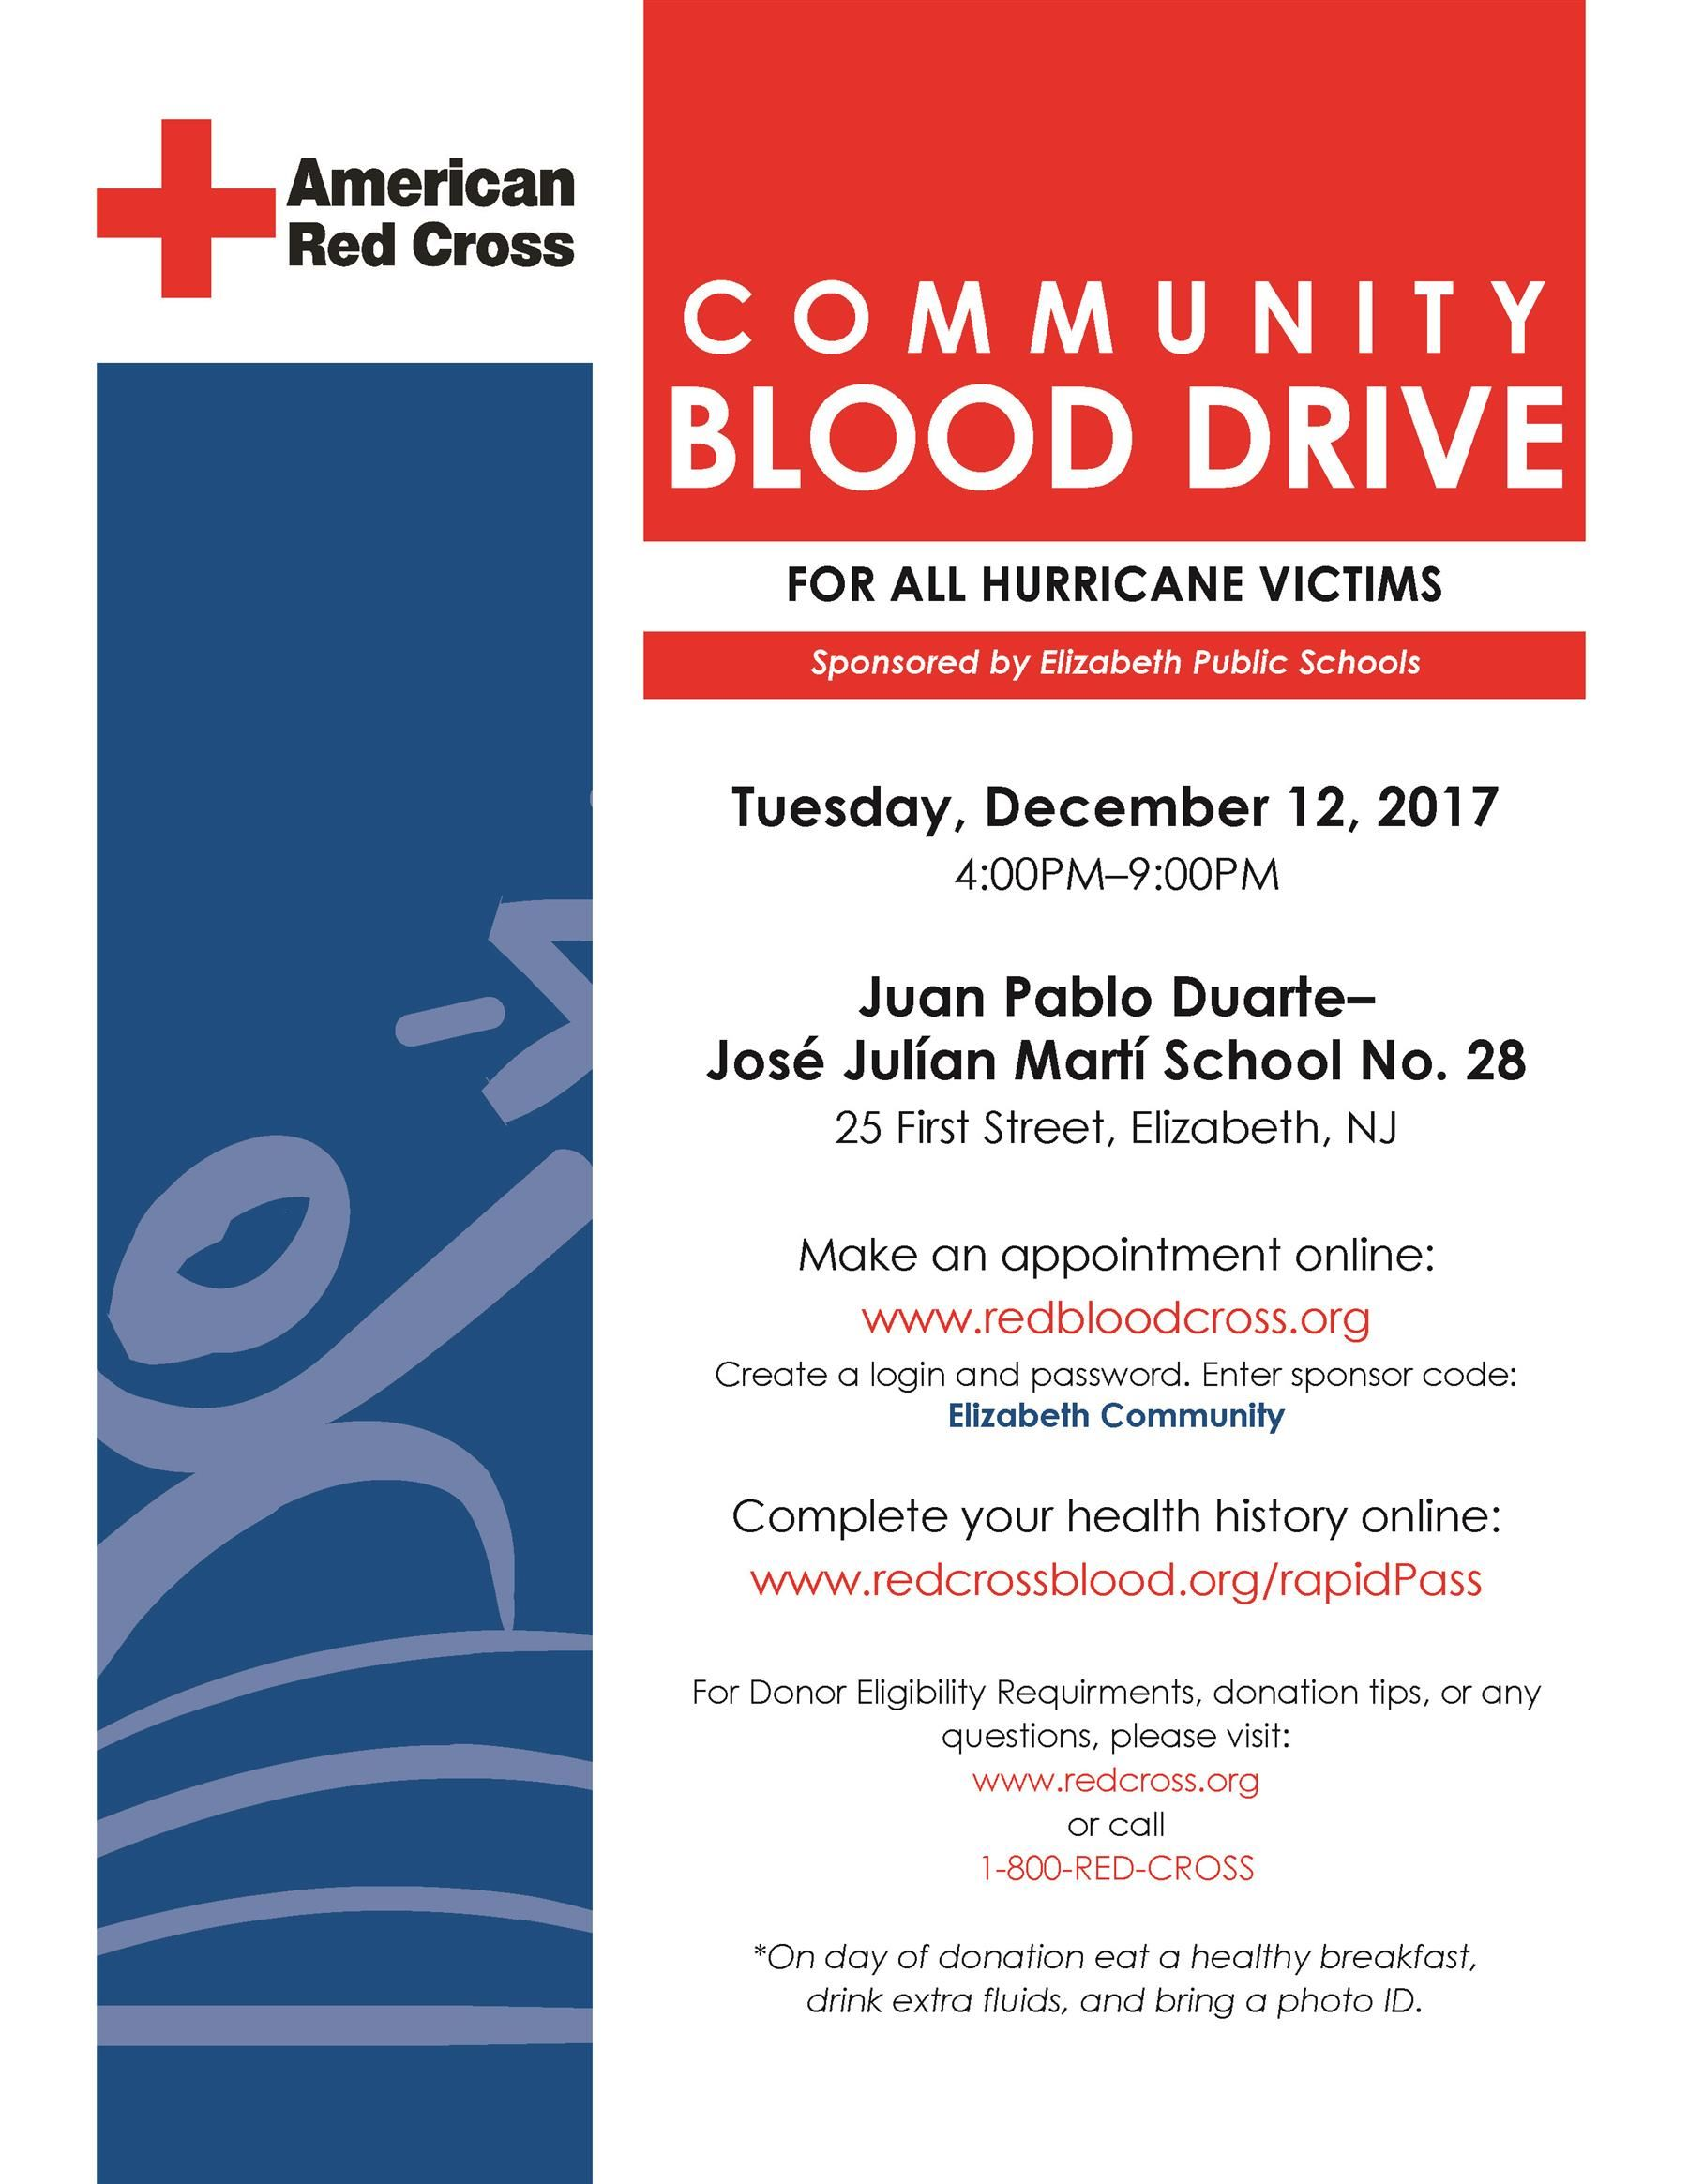 Community Blood Drive for All Hurricane Victims